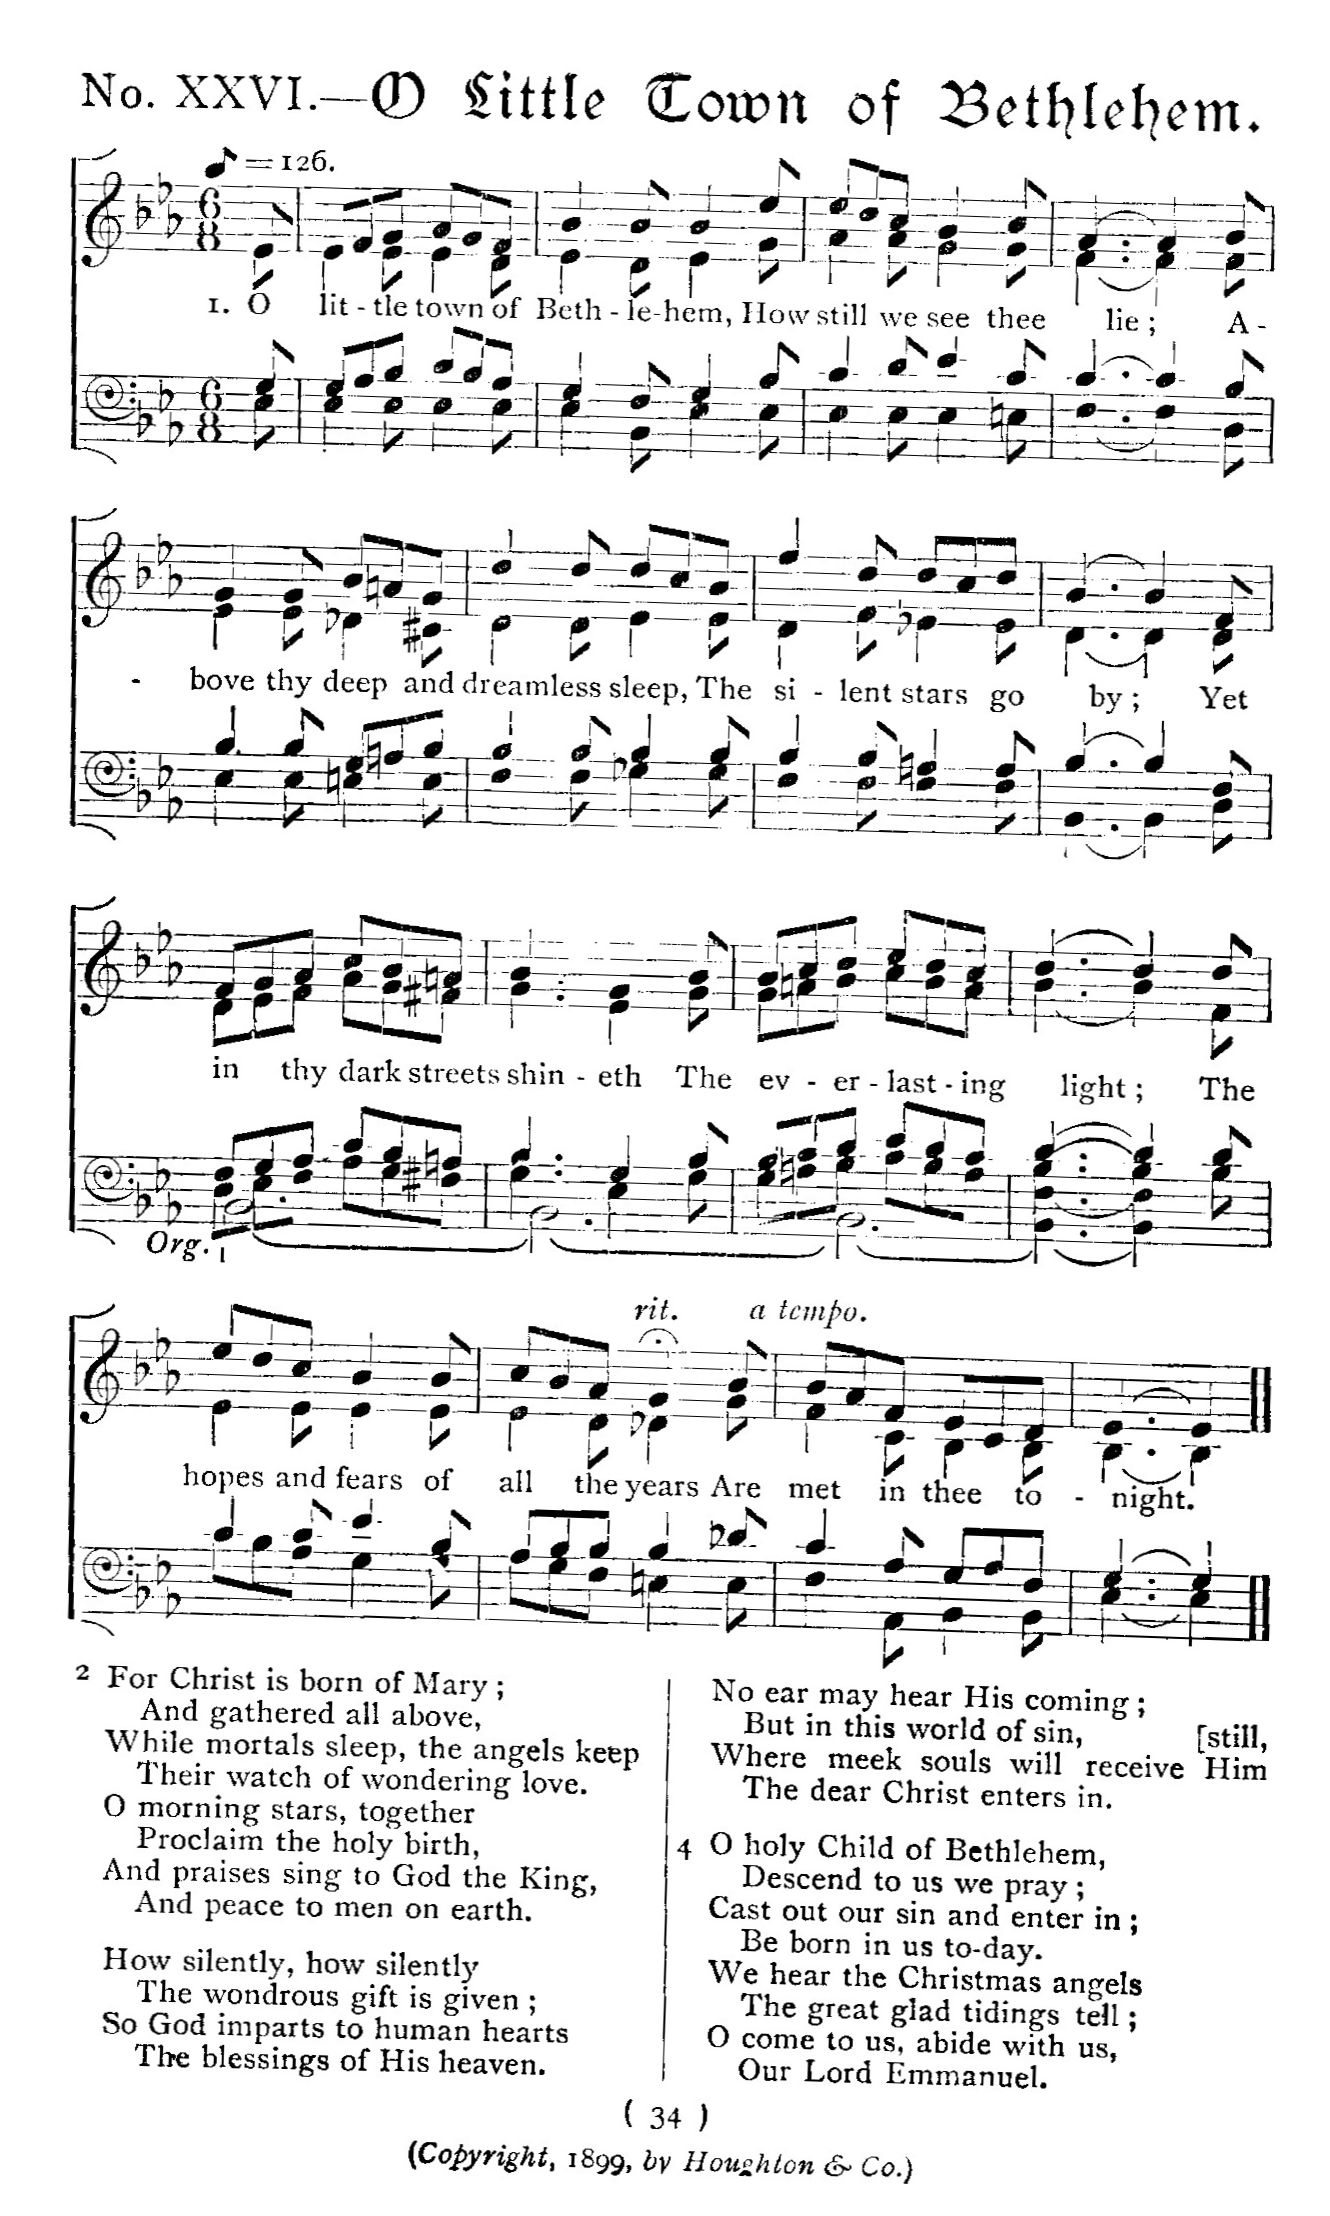 O little town of bethlehem sheet music hexwebz Gallery